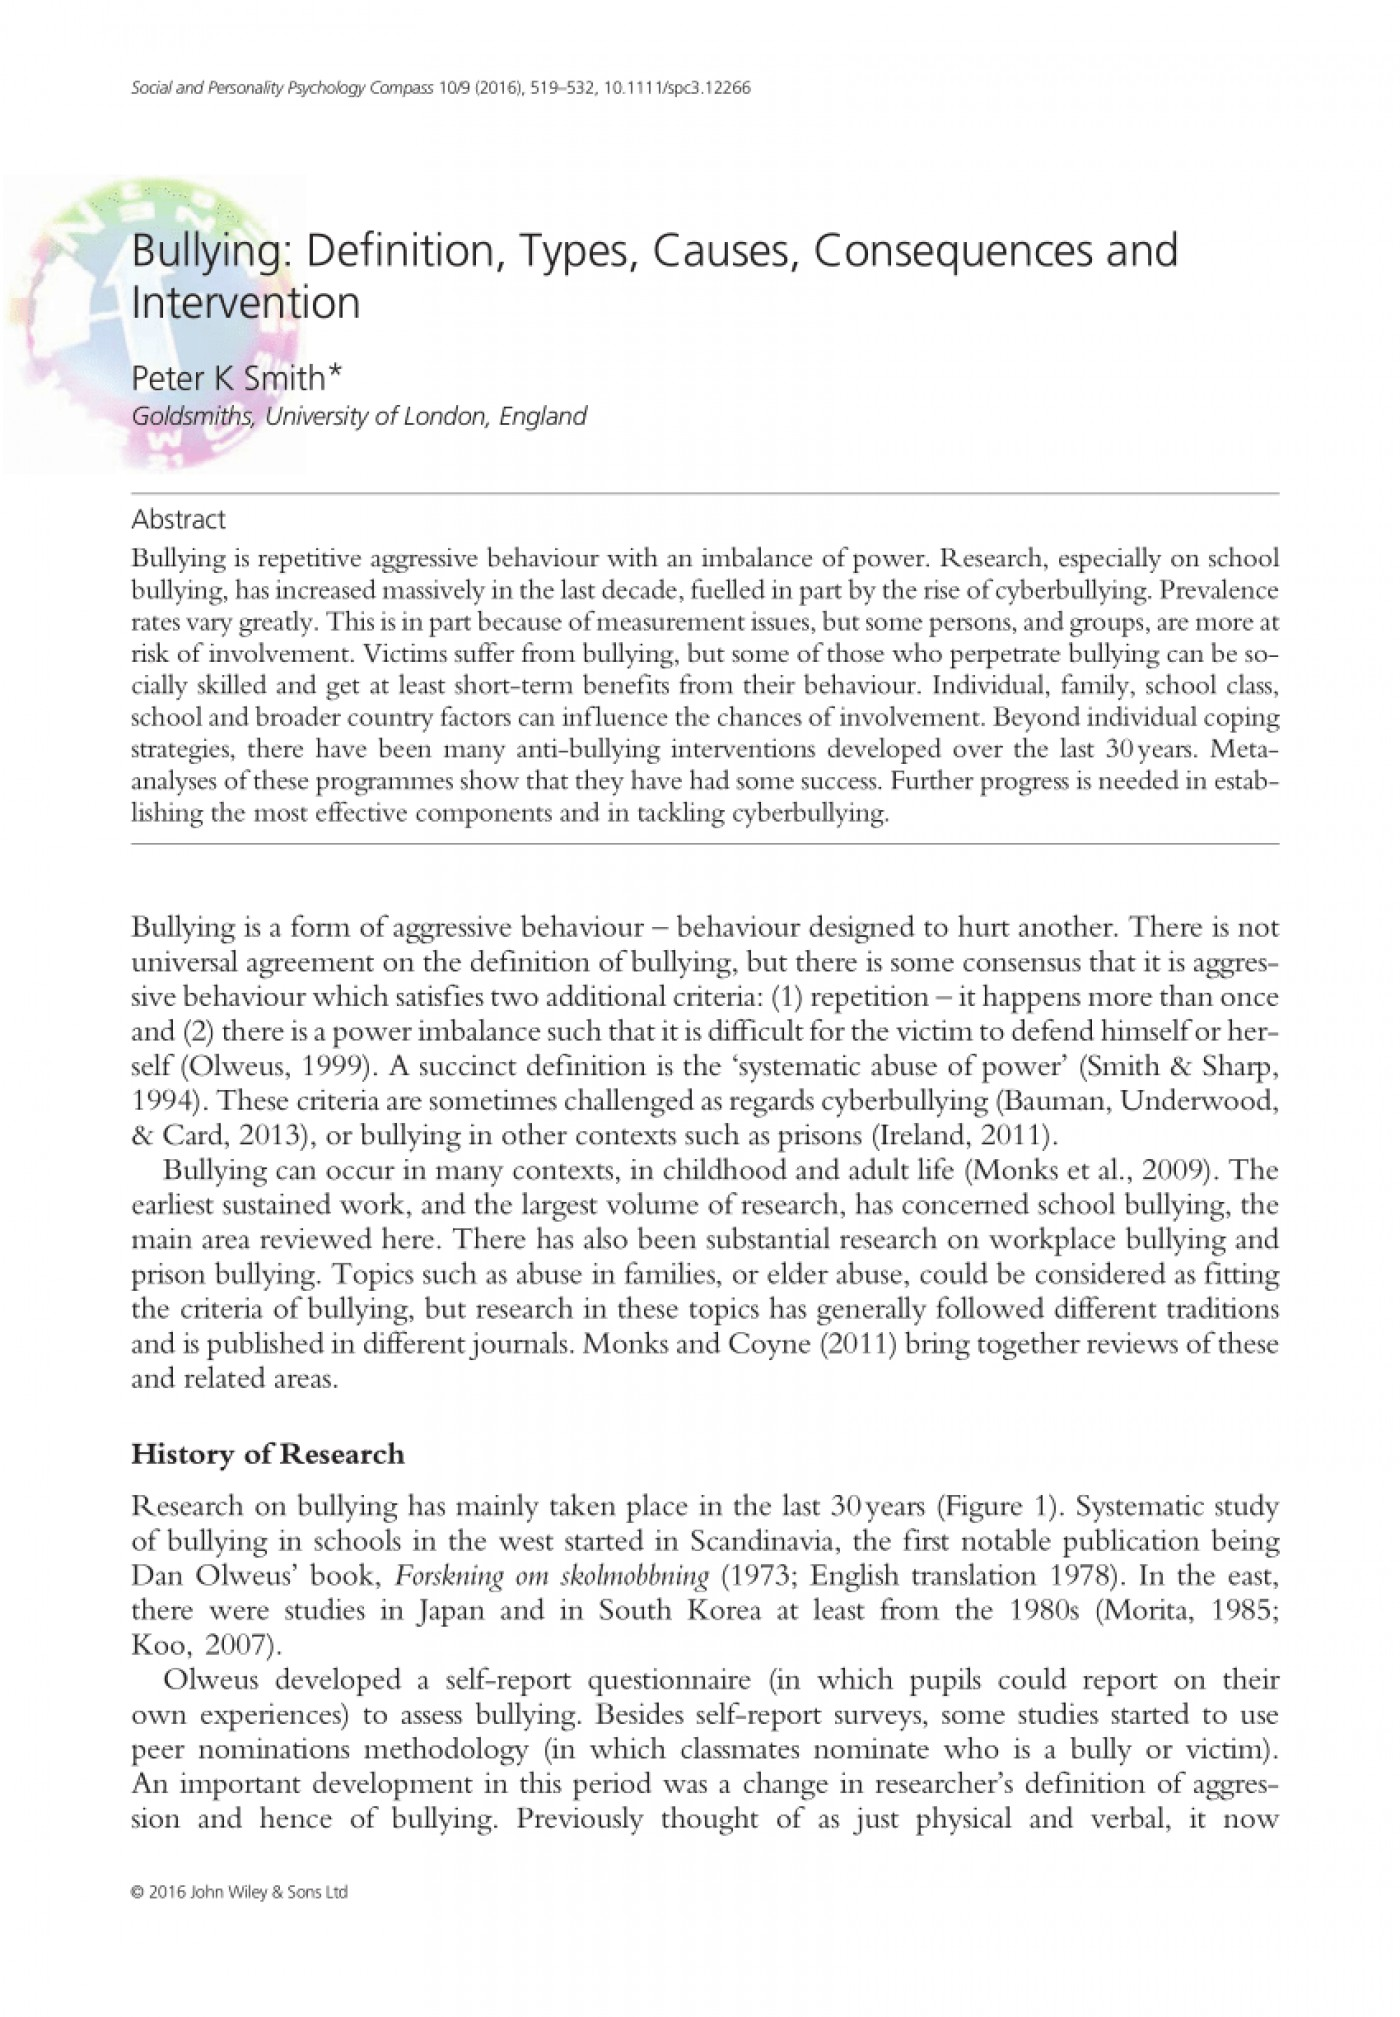 008 Largepreview Research Paper Psychological Effects Of Breathtaking Bullying 1400